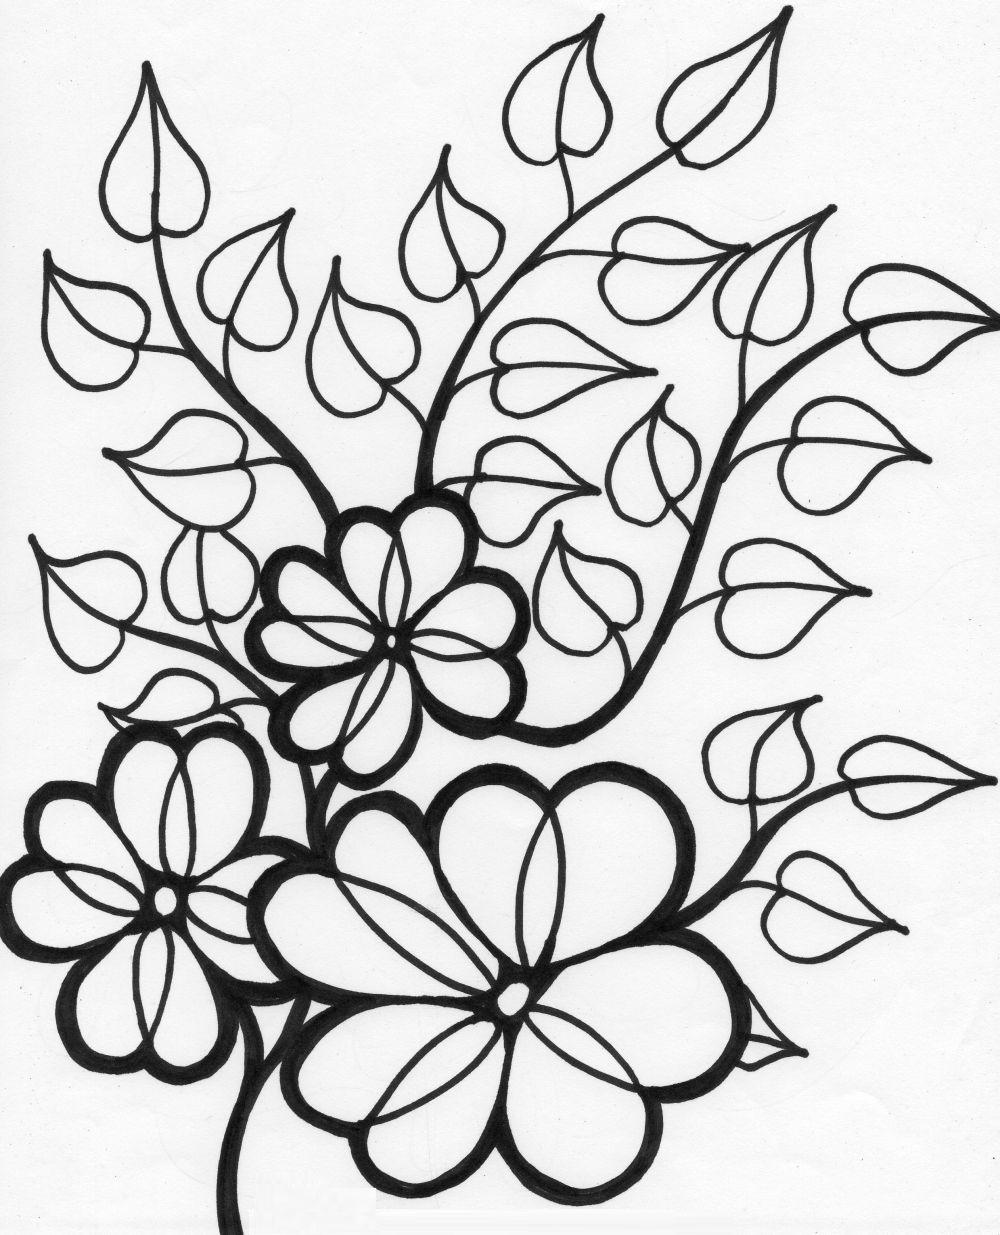 Flower coloring pages for adults - Here You Will Find 20 Flower Coloring Pages Plant A Flower Today And You Will Help Earth Tomorrow Flower Coloring Pages Fun Filled